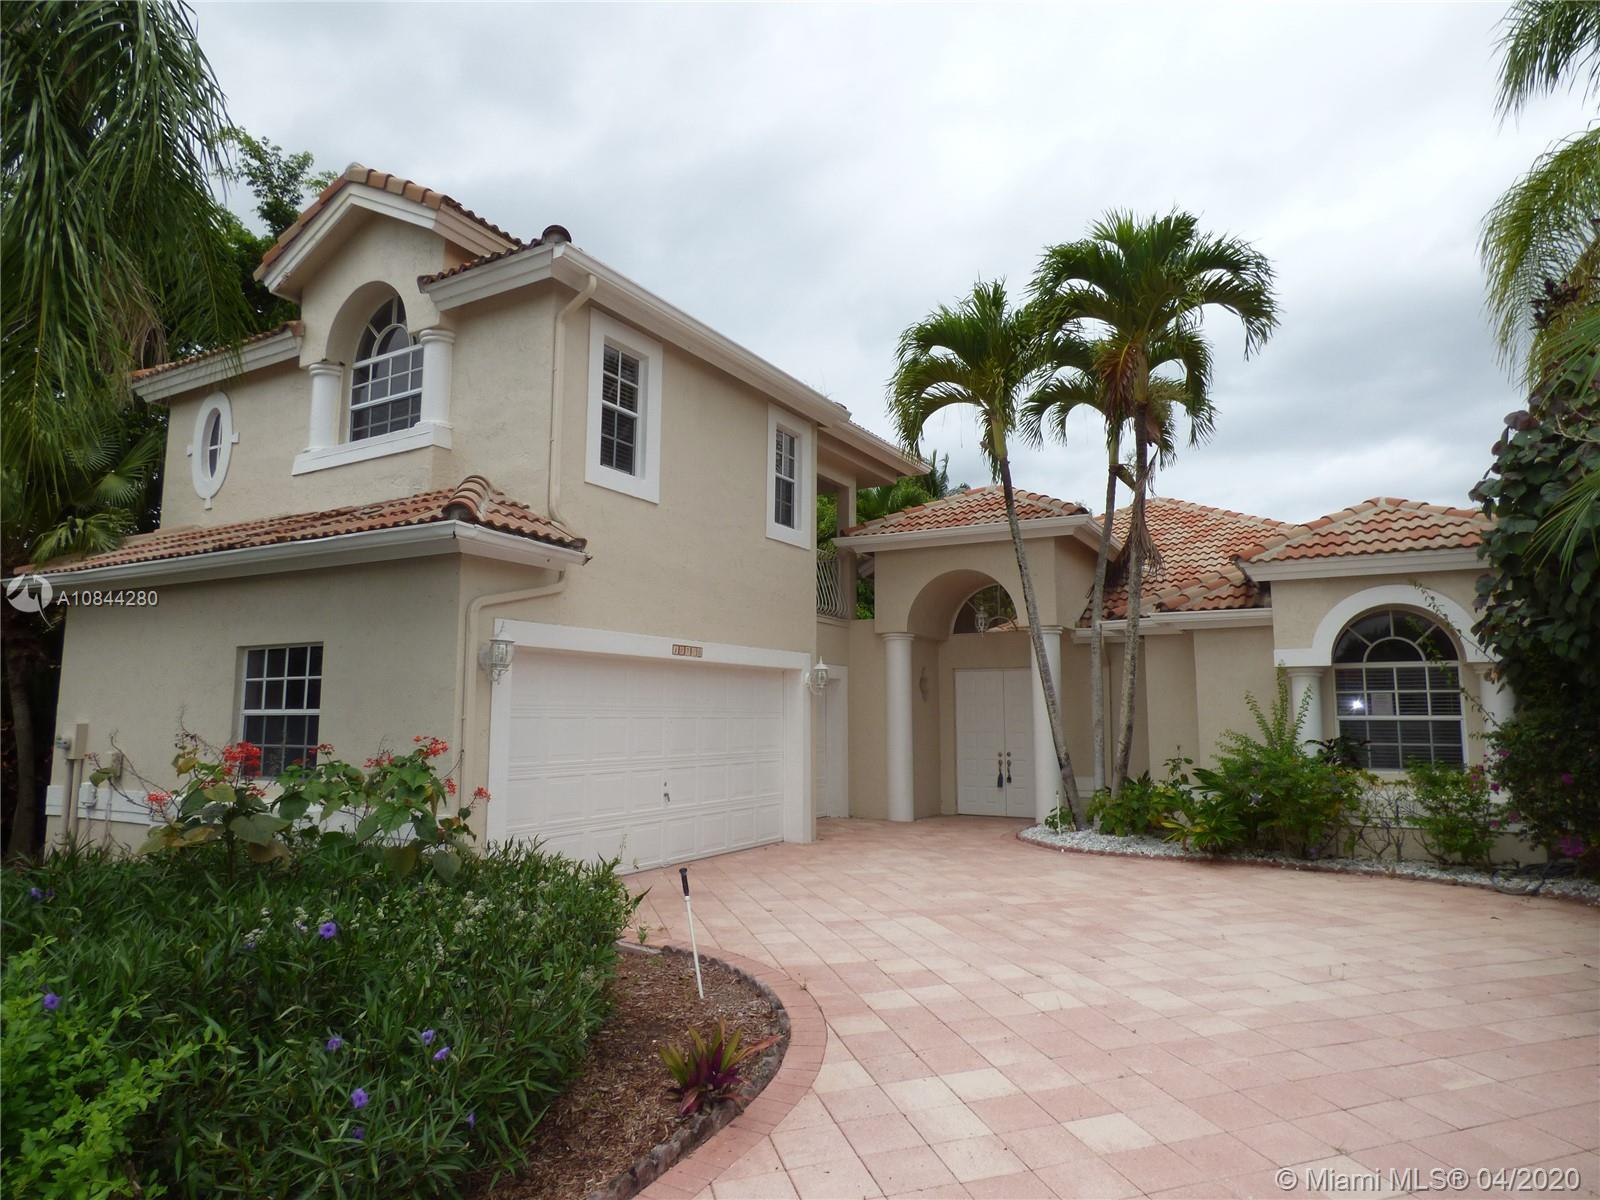 Tranquil Courtyard home with private pool in highly rated Wycliff Community.  Main house features sp